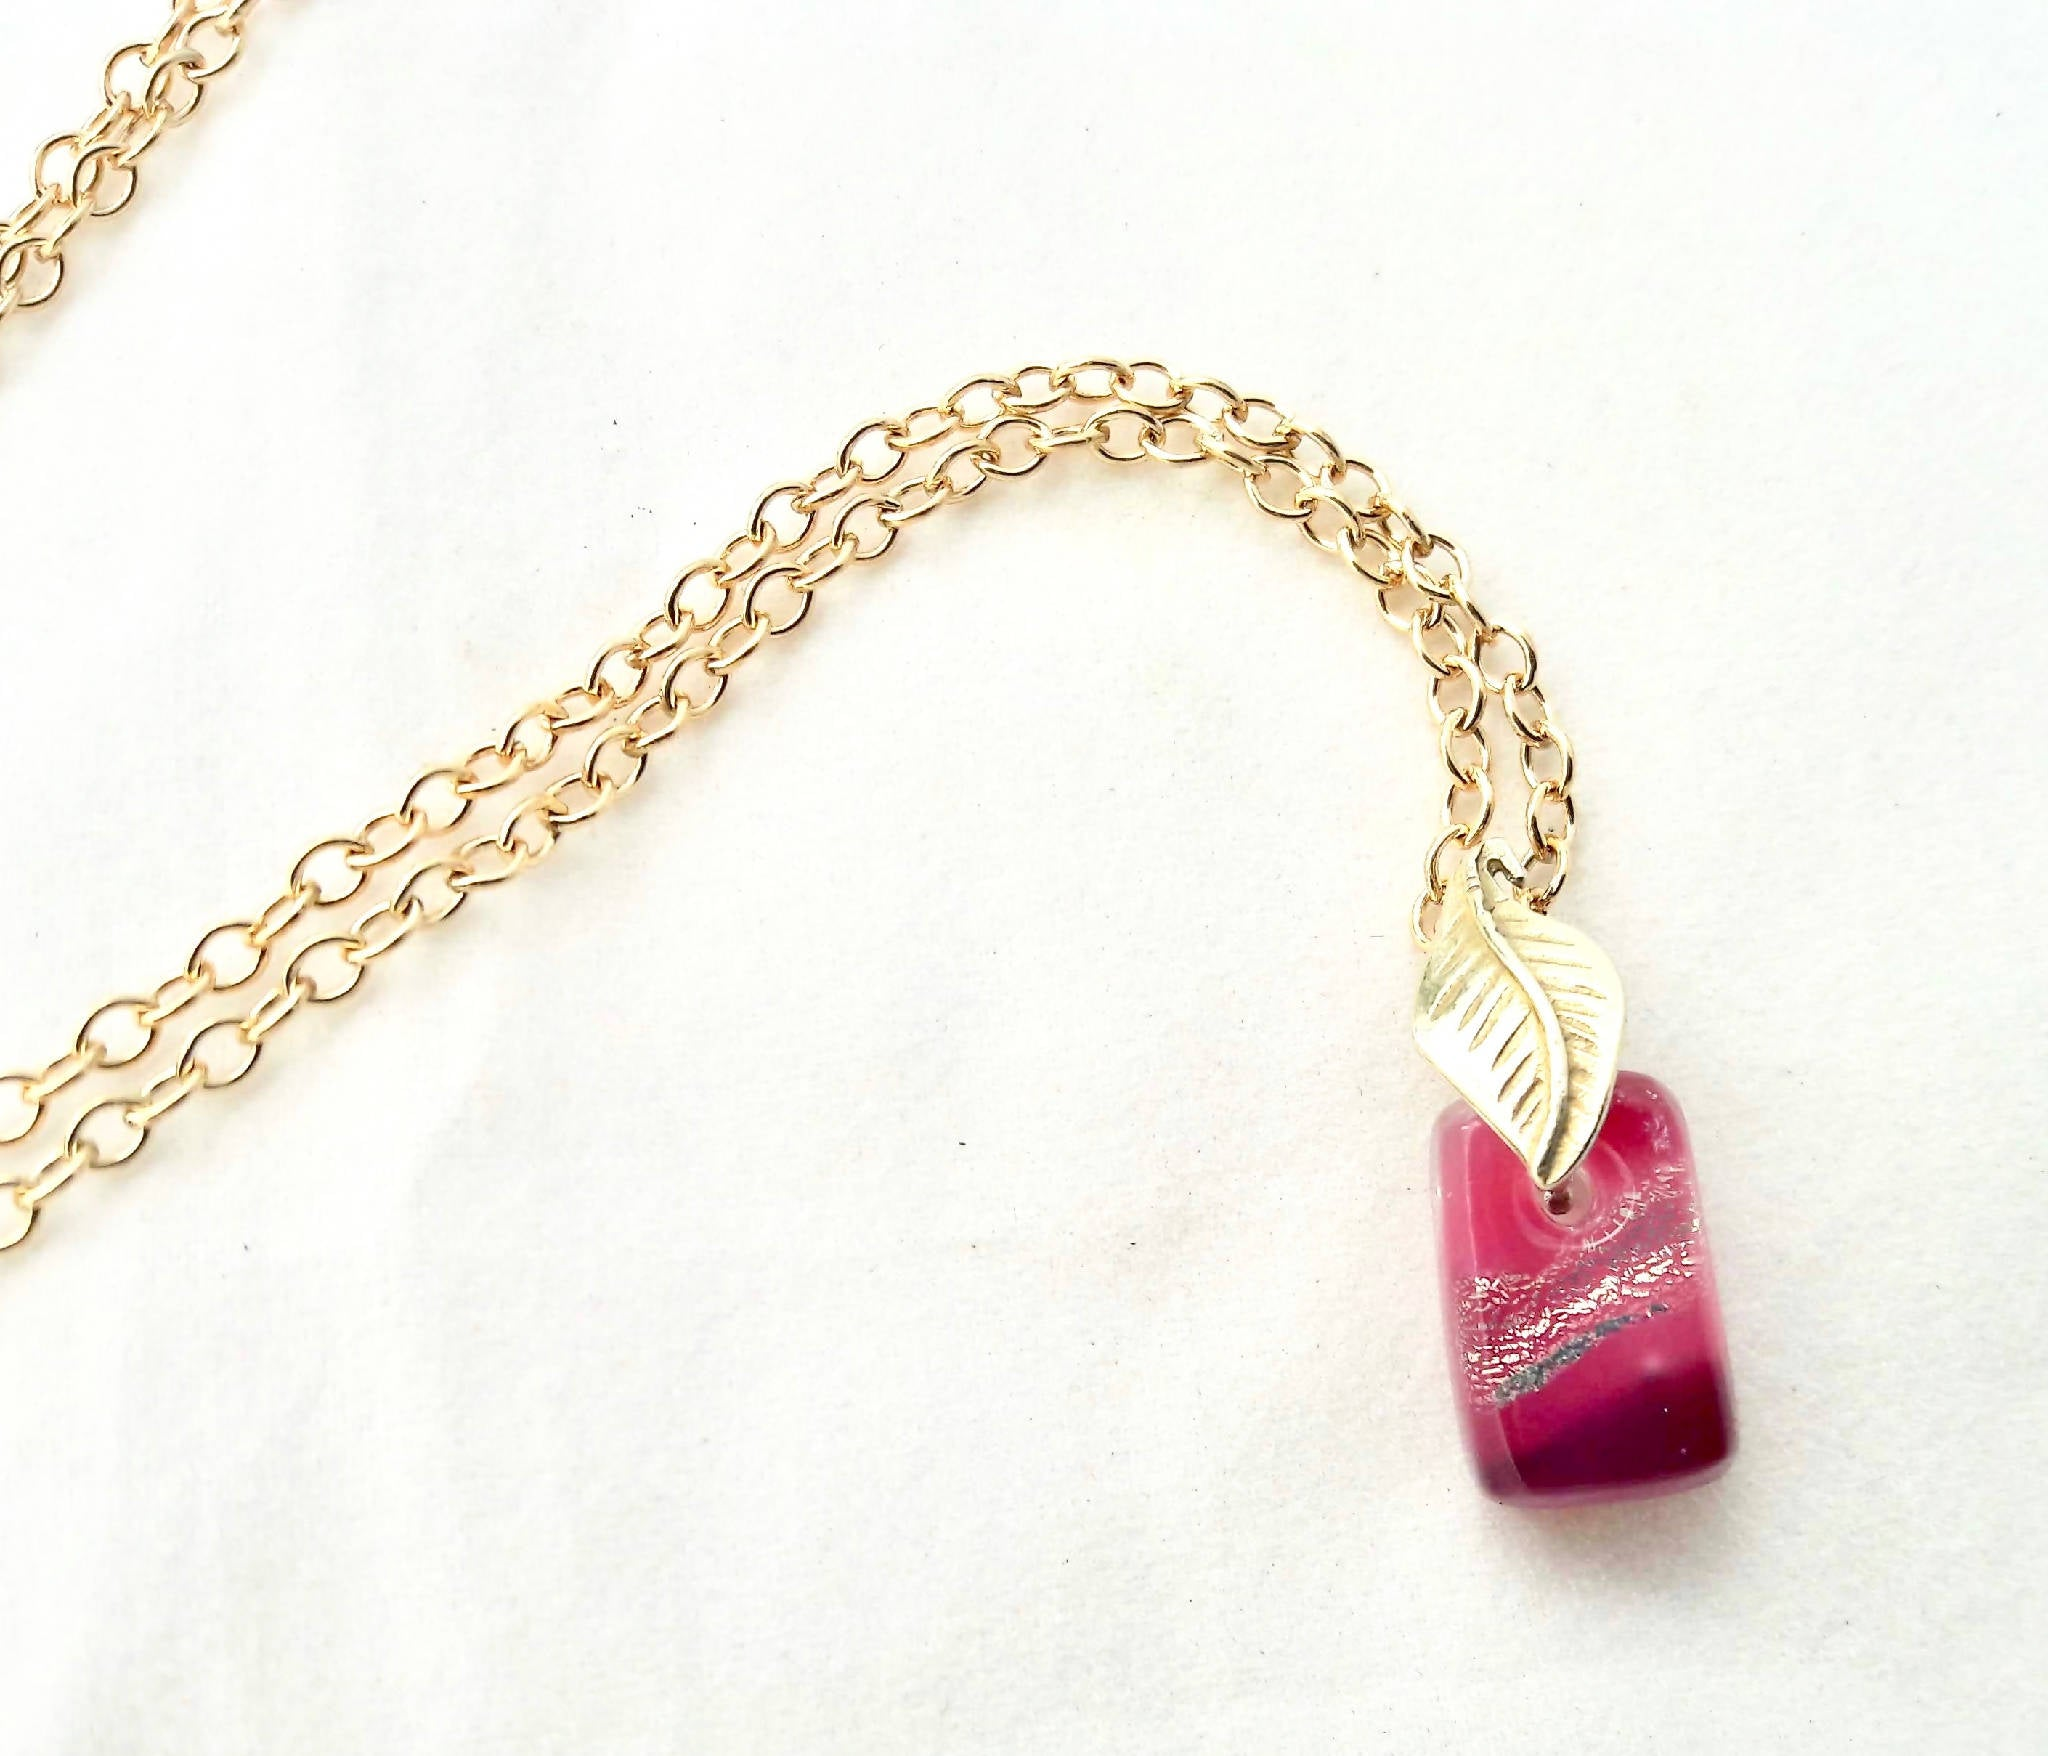 Fused glass micro pendant - Pink Lemonade